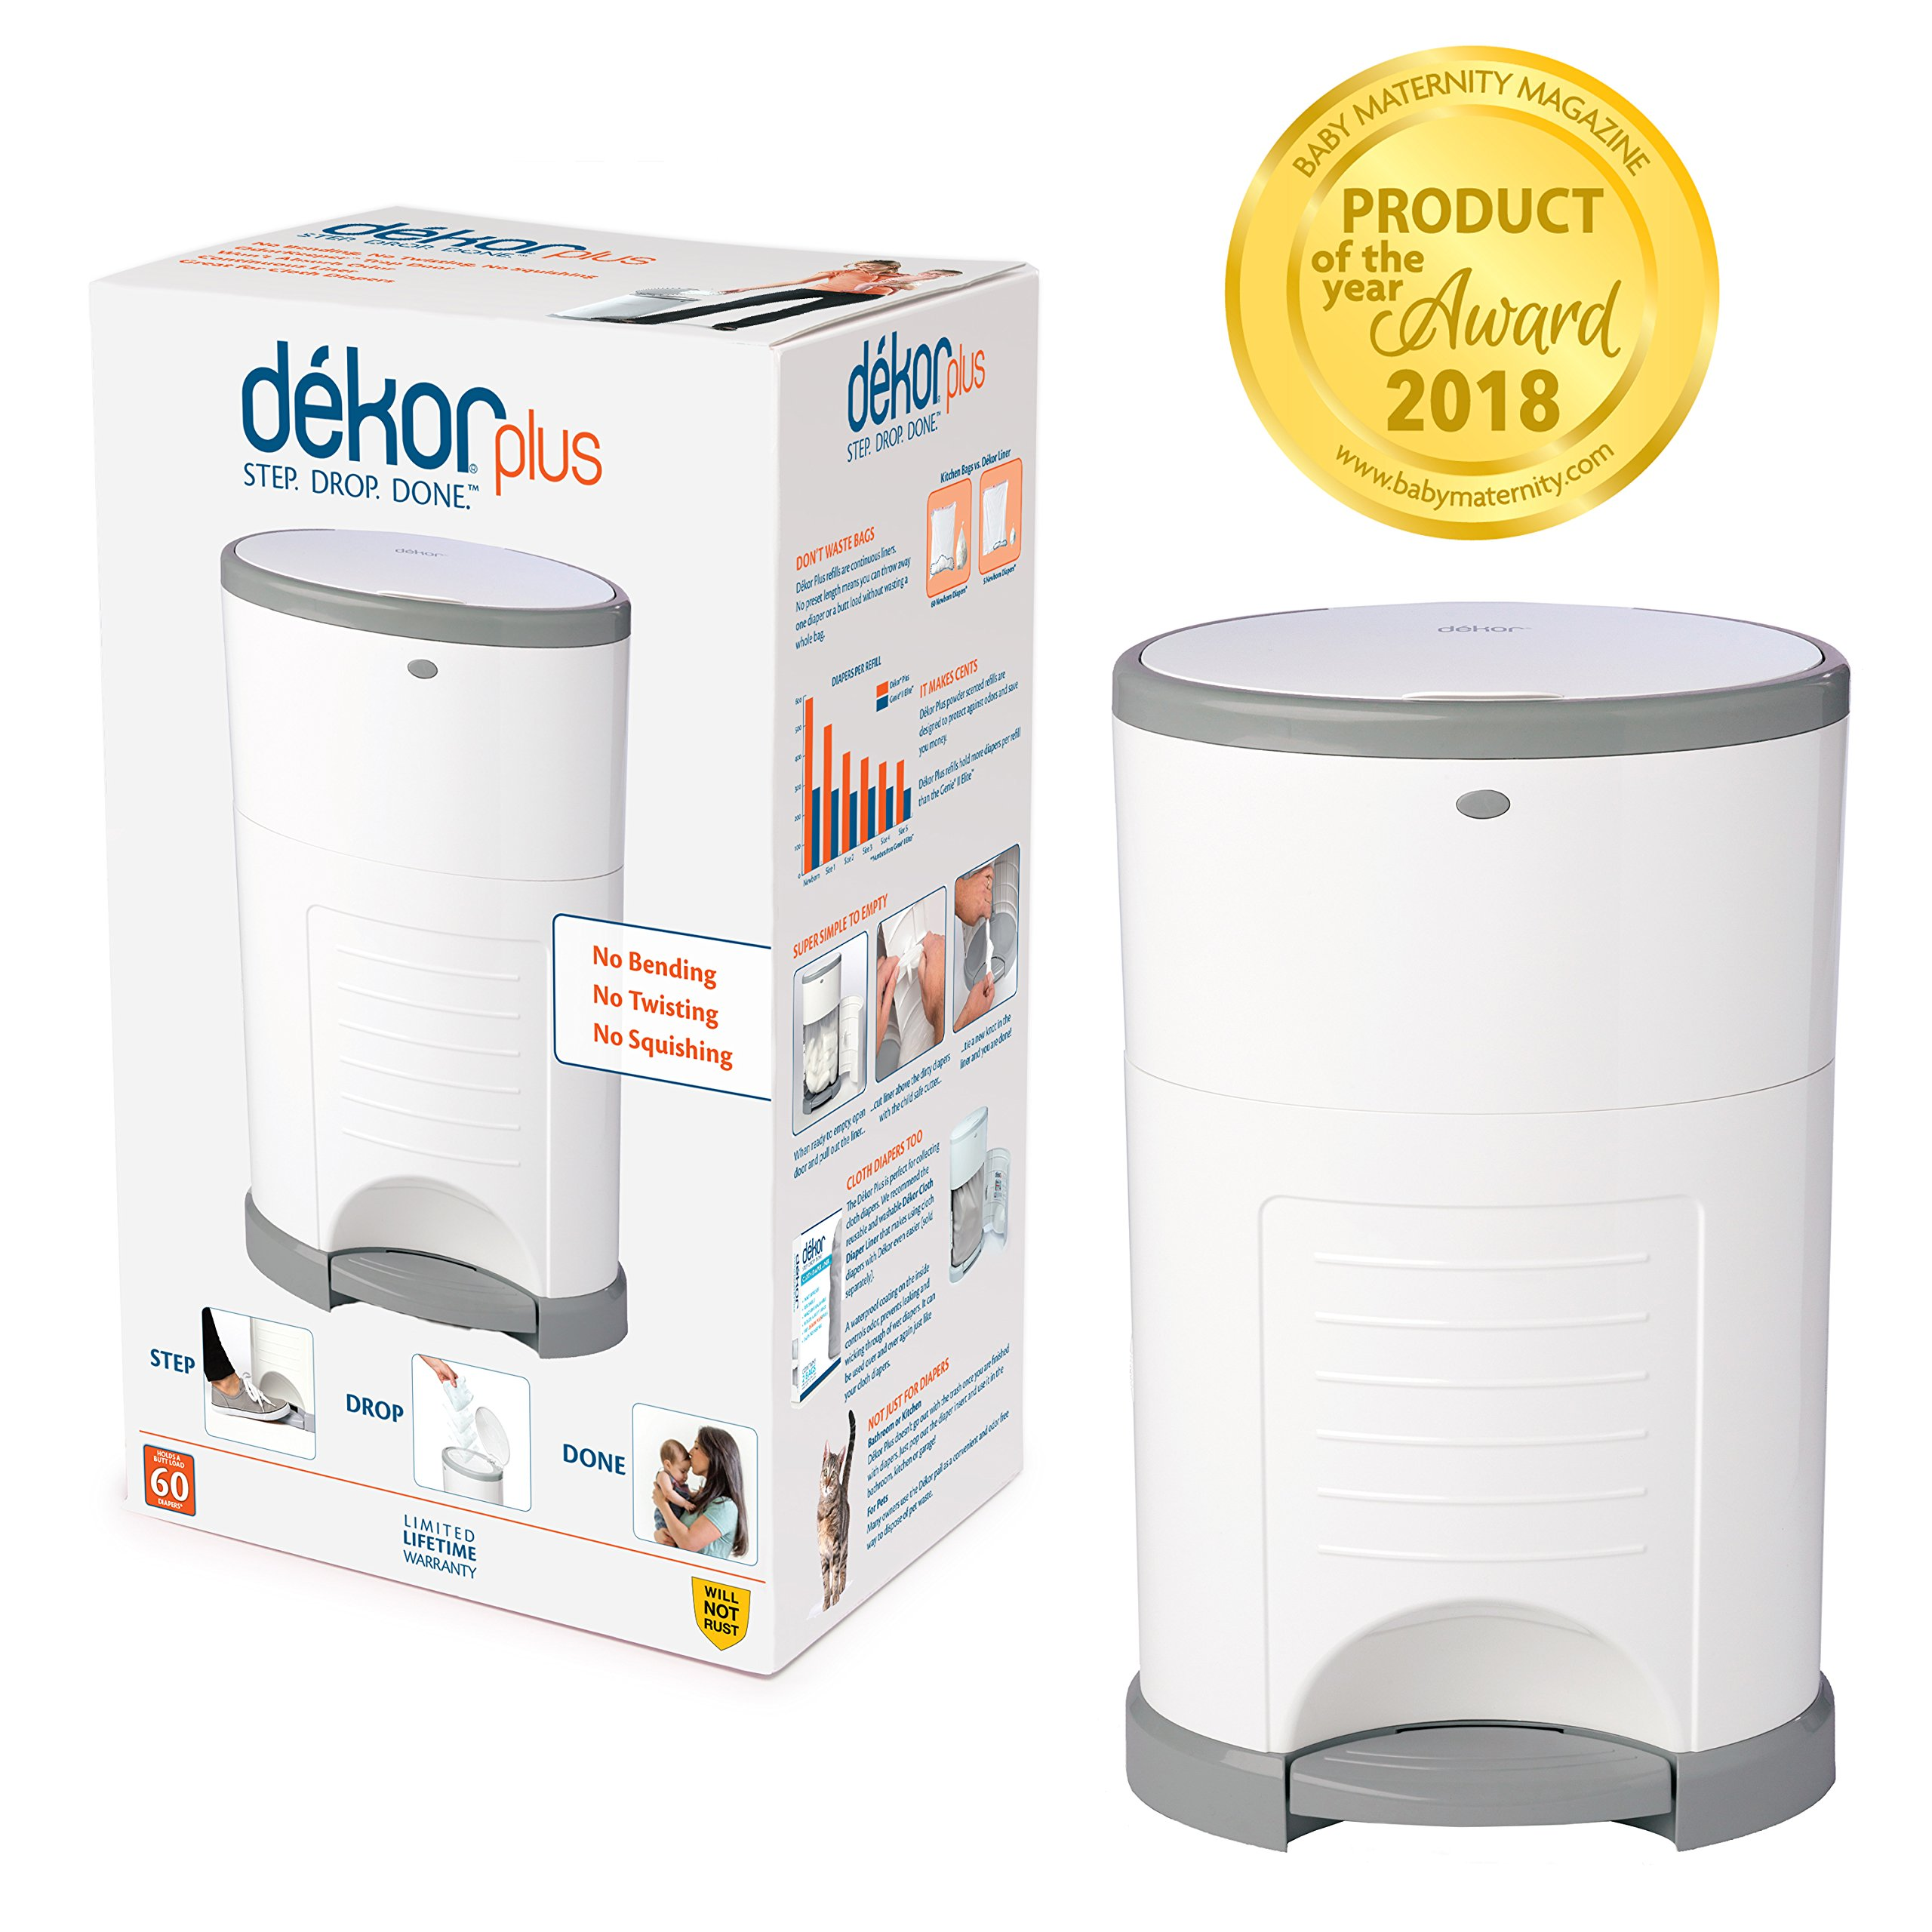 Dekor Plus Hands-Free Diaper Pail | Easiest to Use | Just Step – Drop – Done | Doesn't Absorb Odors | 20 Second Bag Change | Most Economical Refill System |Great for Cloth Diapers | White by DEKOR